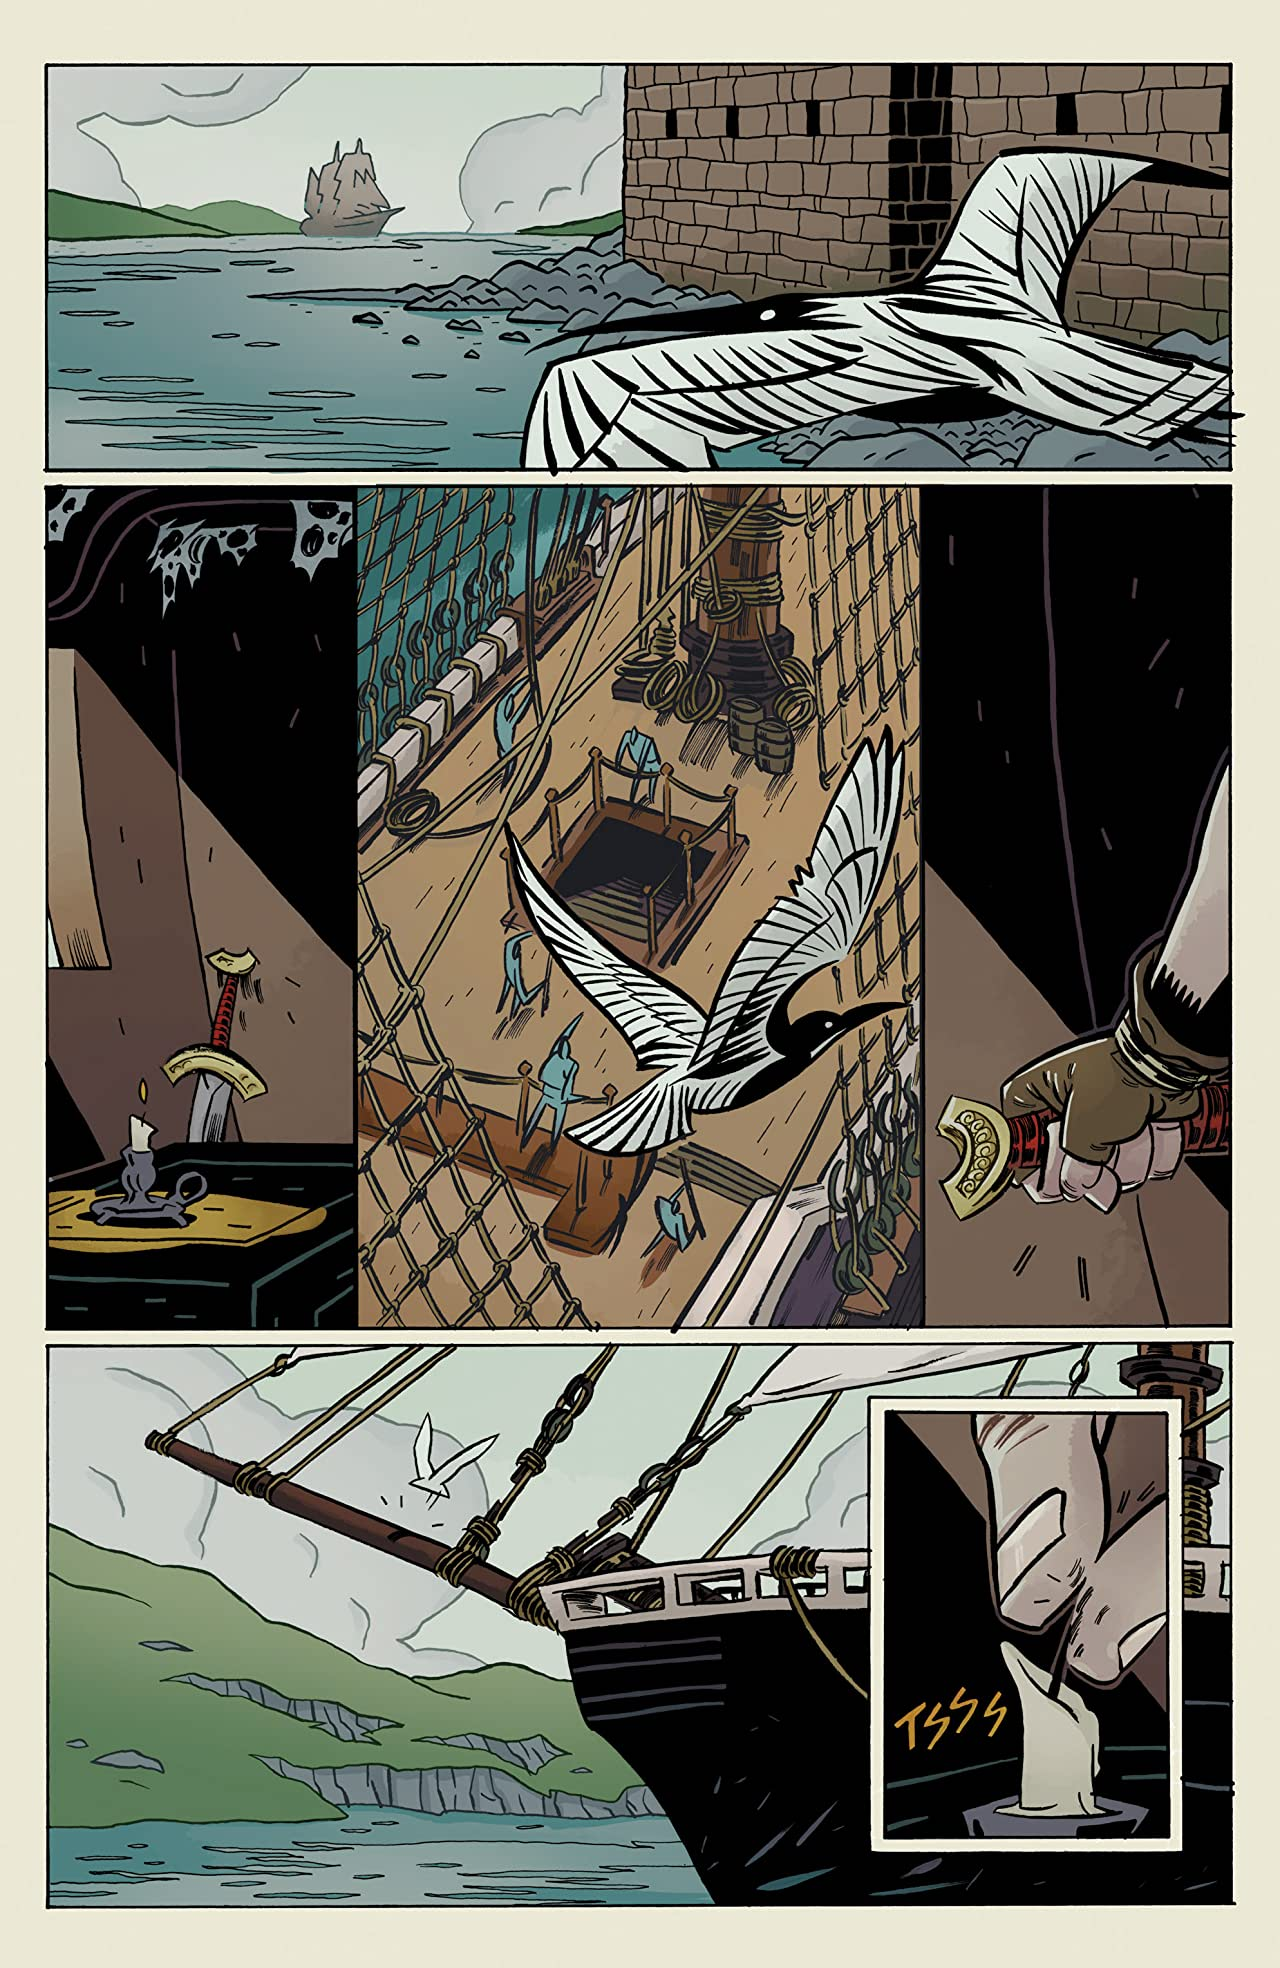 Head Lopper Vol. 1: & The Island or A Plague Of Beasts